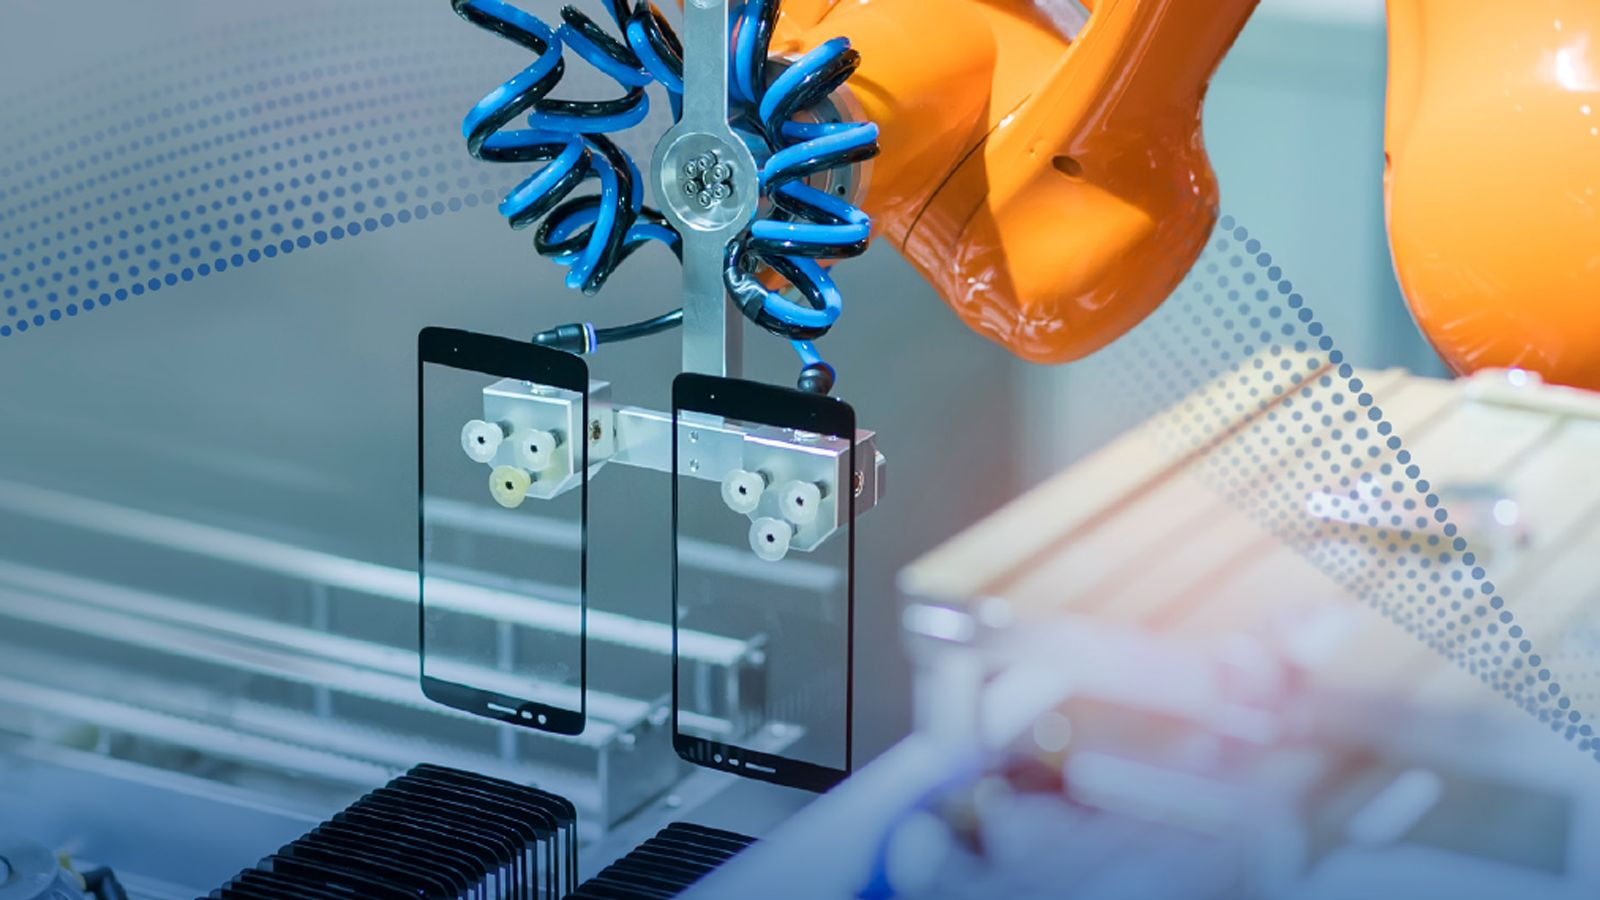 5G NR Device Manufacturer Doubles Test Capacity with Zero Additional CapEx